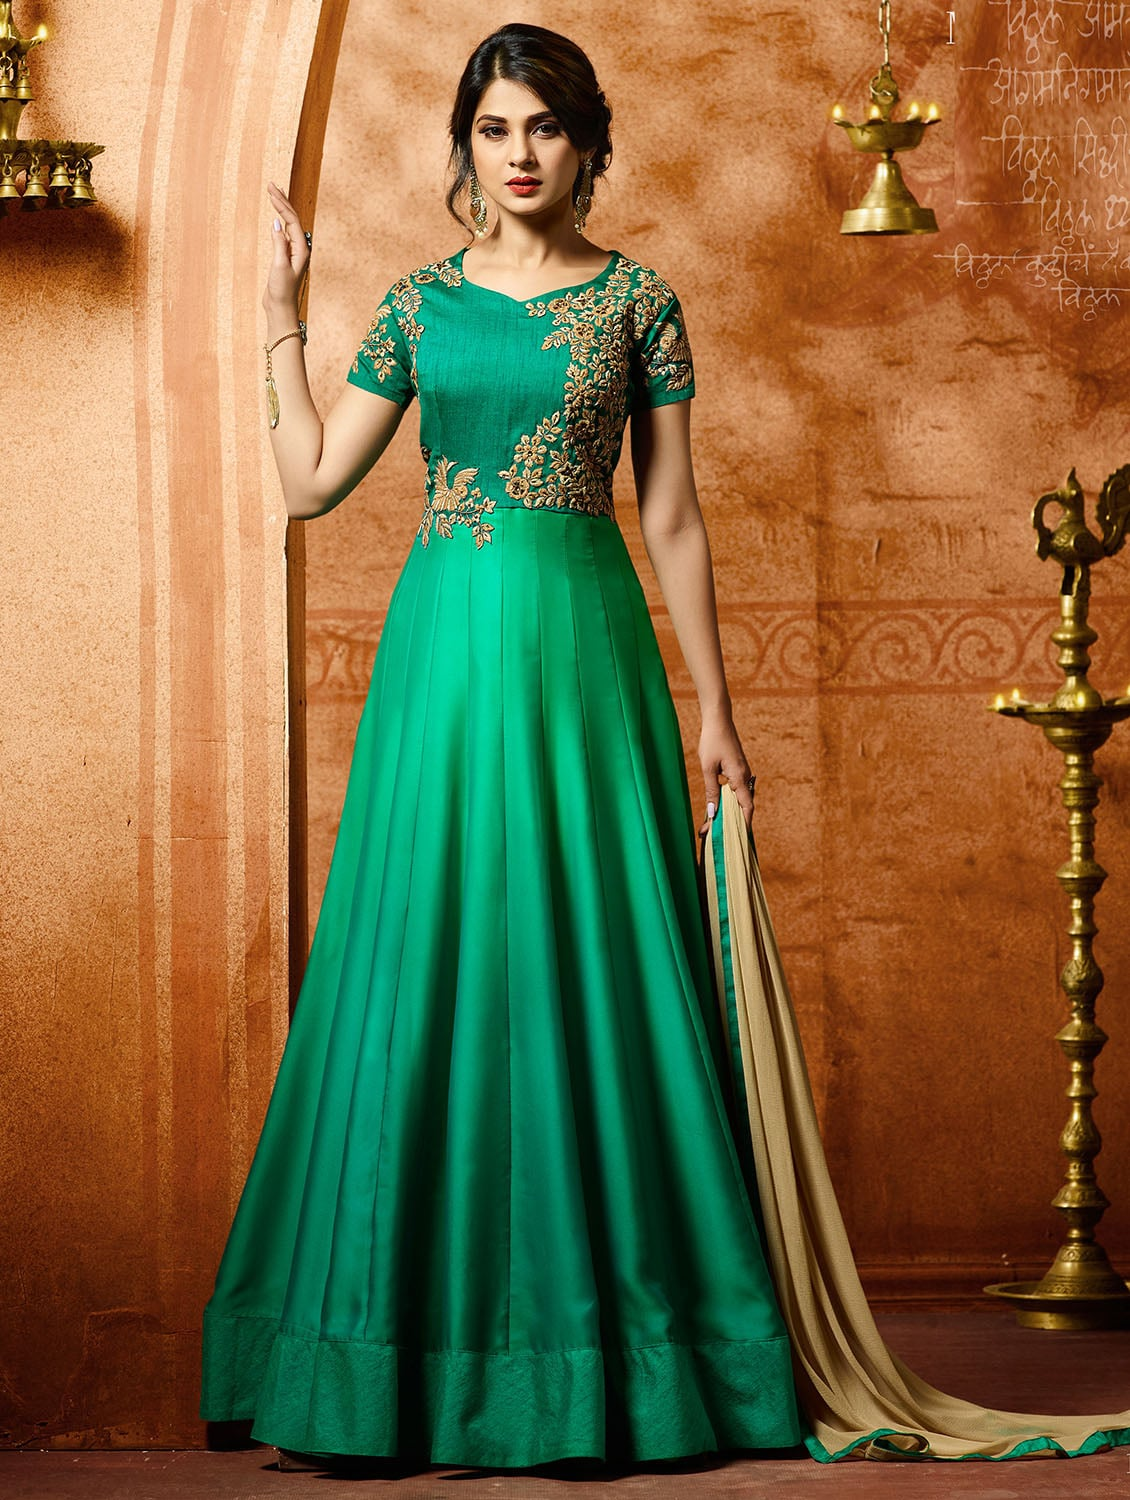 cfc315e9556a Buy Green Silk Semi-stitched Anarkali Suit for Women from Yoyo Fashion for  ₹2030 at 65% off